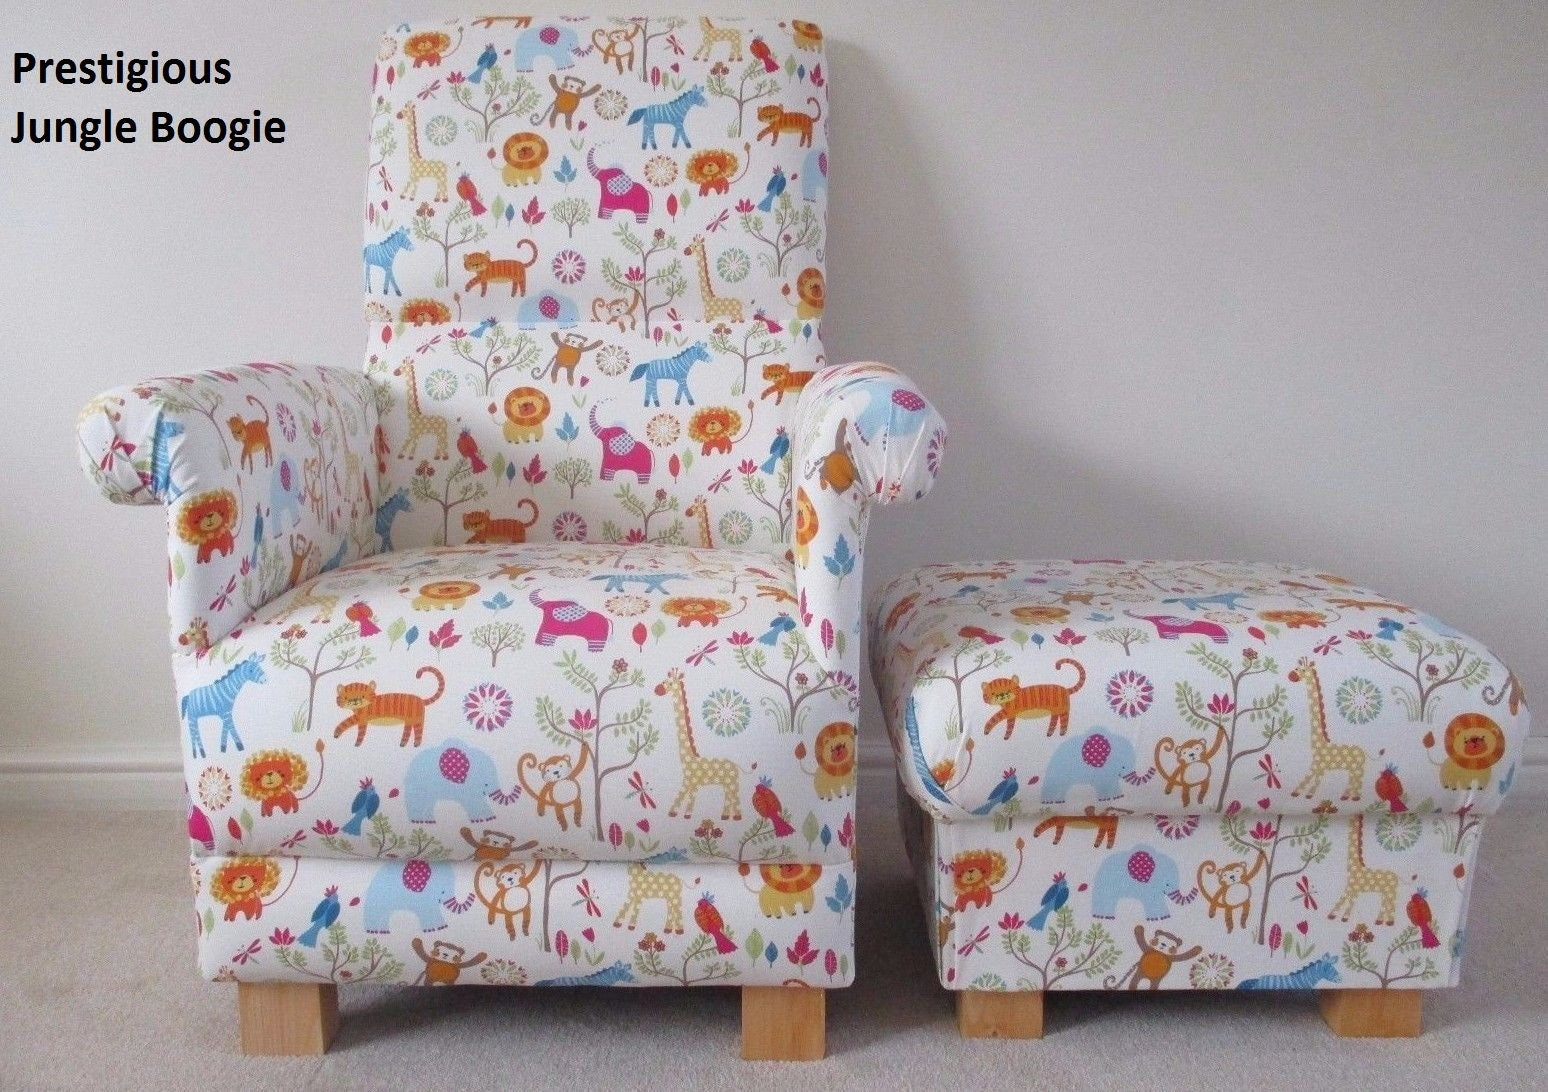 Prestigious Jungle Boogie Fabric Adult Chair  Footstool Nursery Zoo Safari Animals Elephants Tigers Lions Monkeys Zebra Nursing Armchair